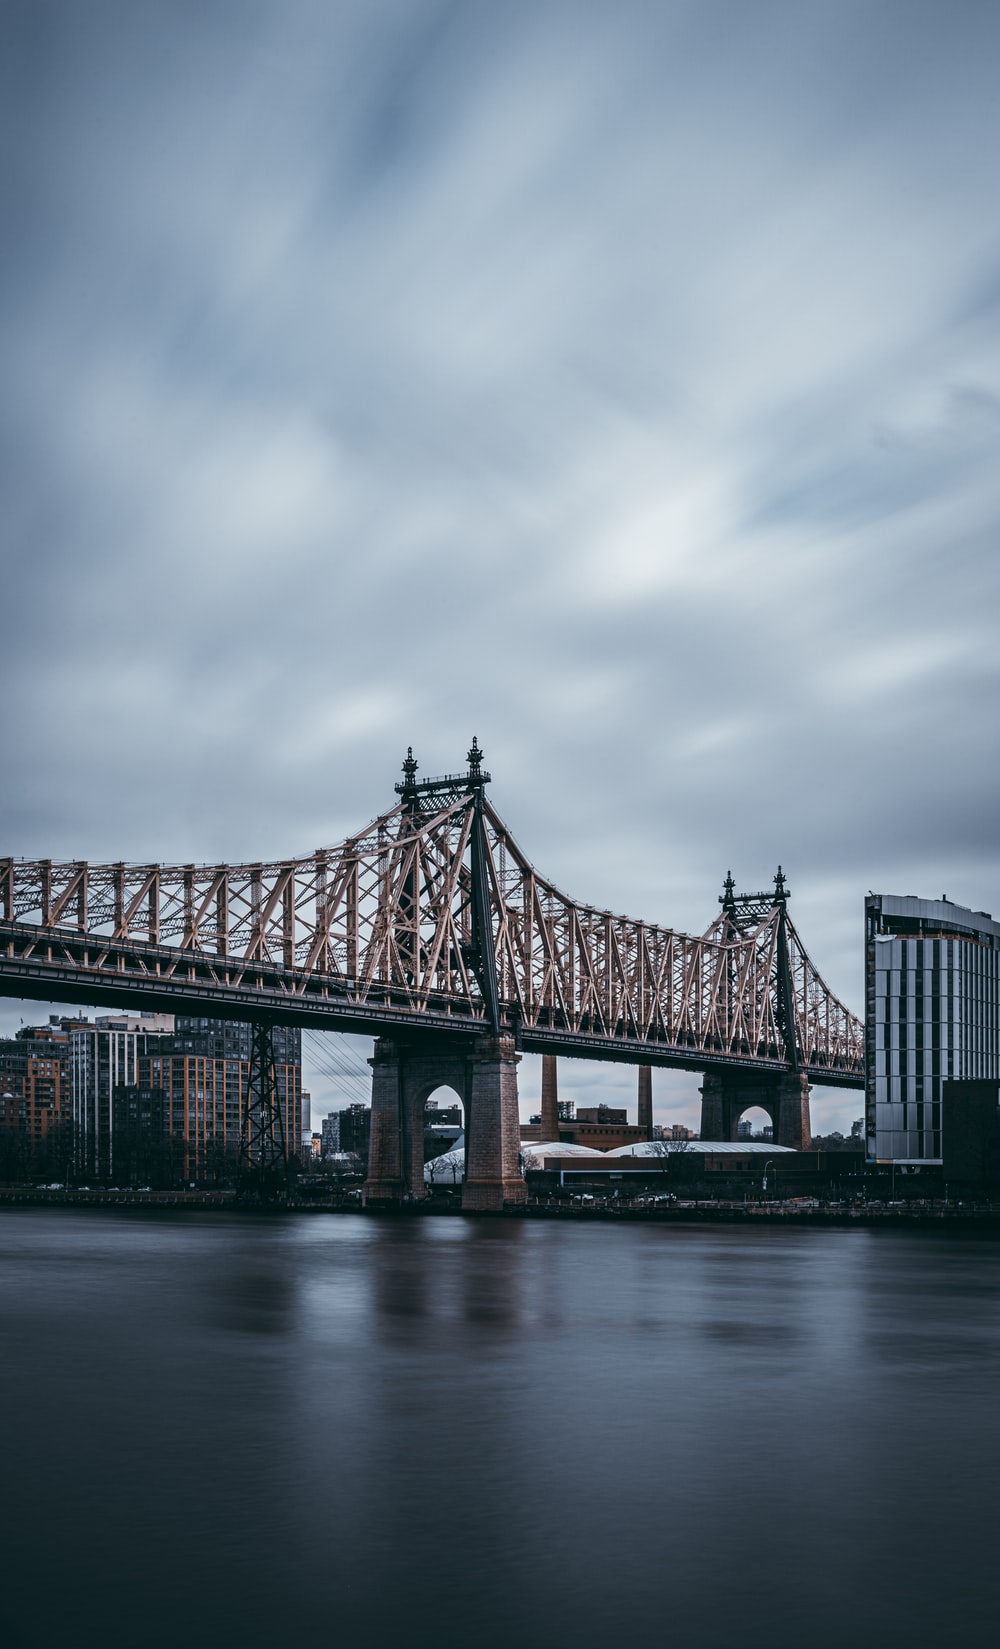 shallow focus photo of bridge under cloudy sky